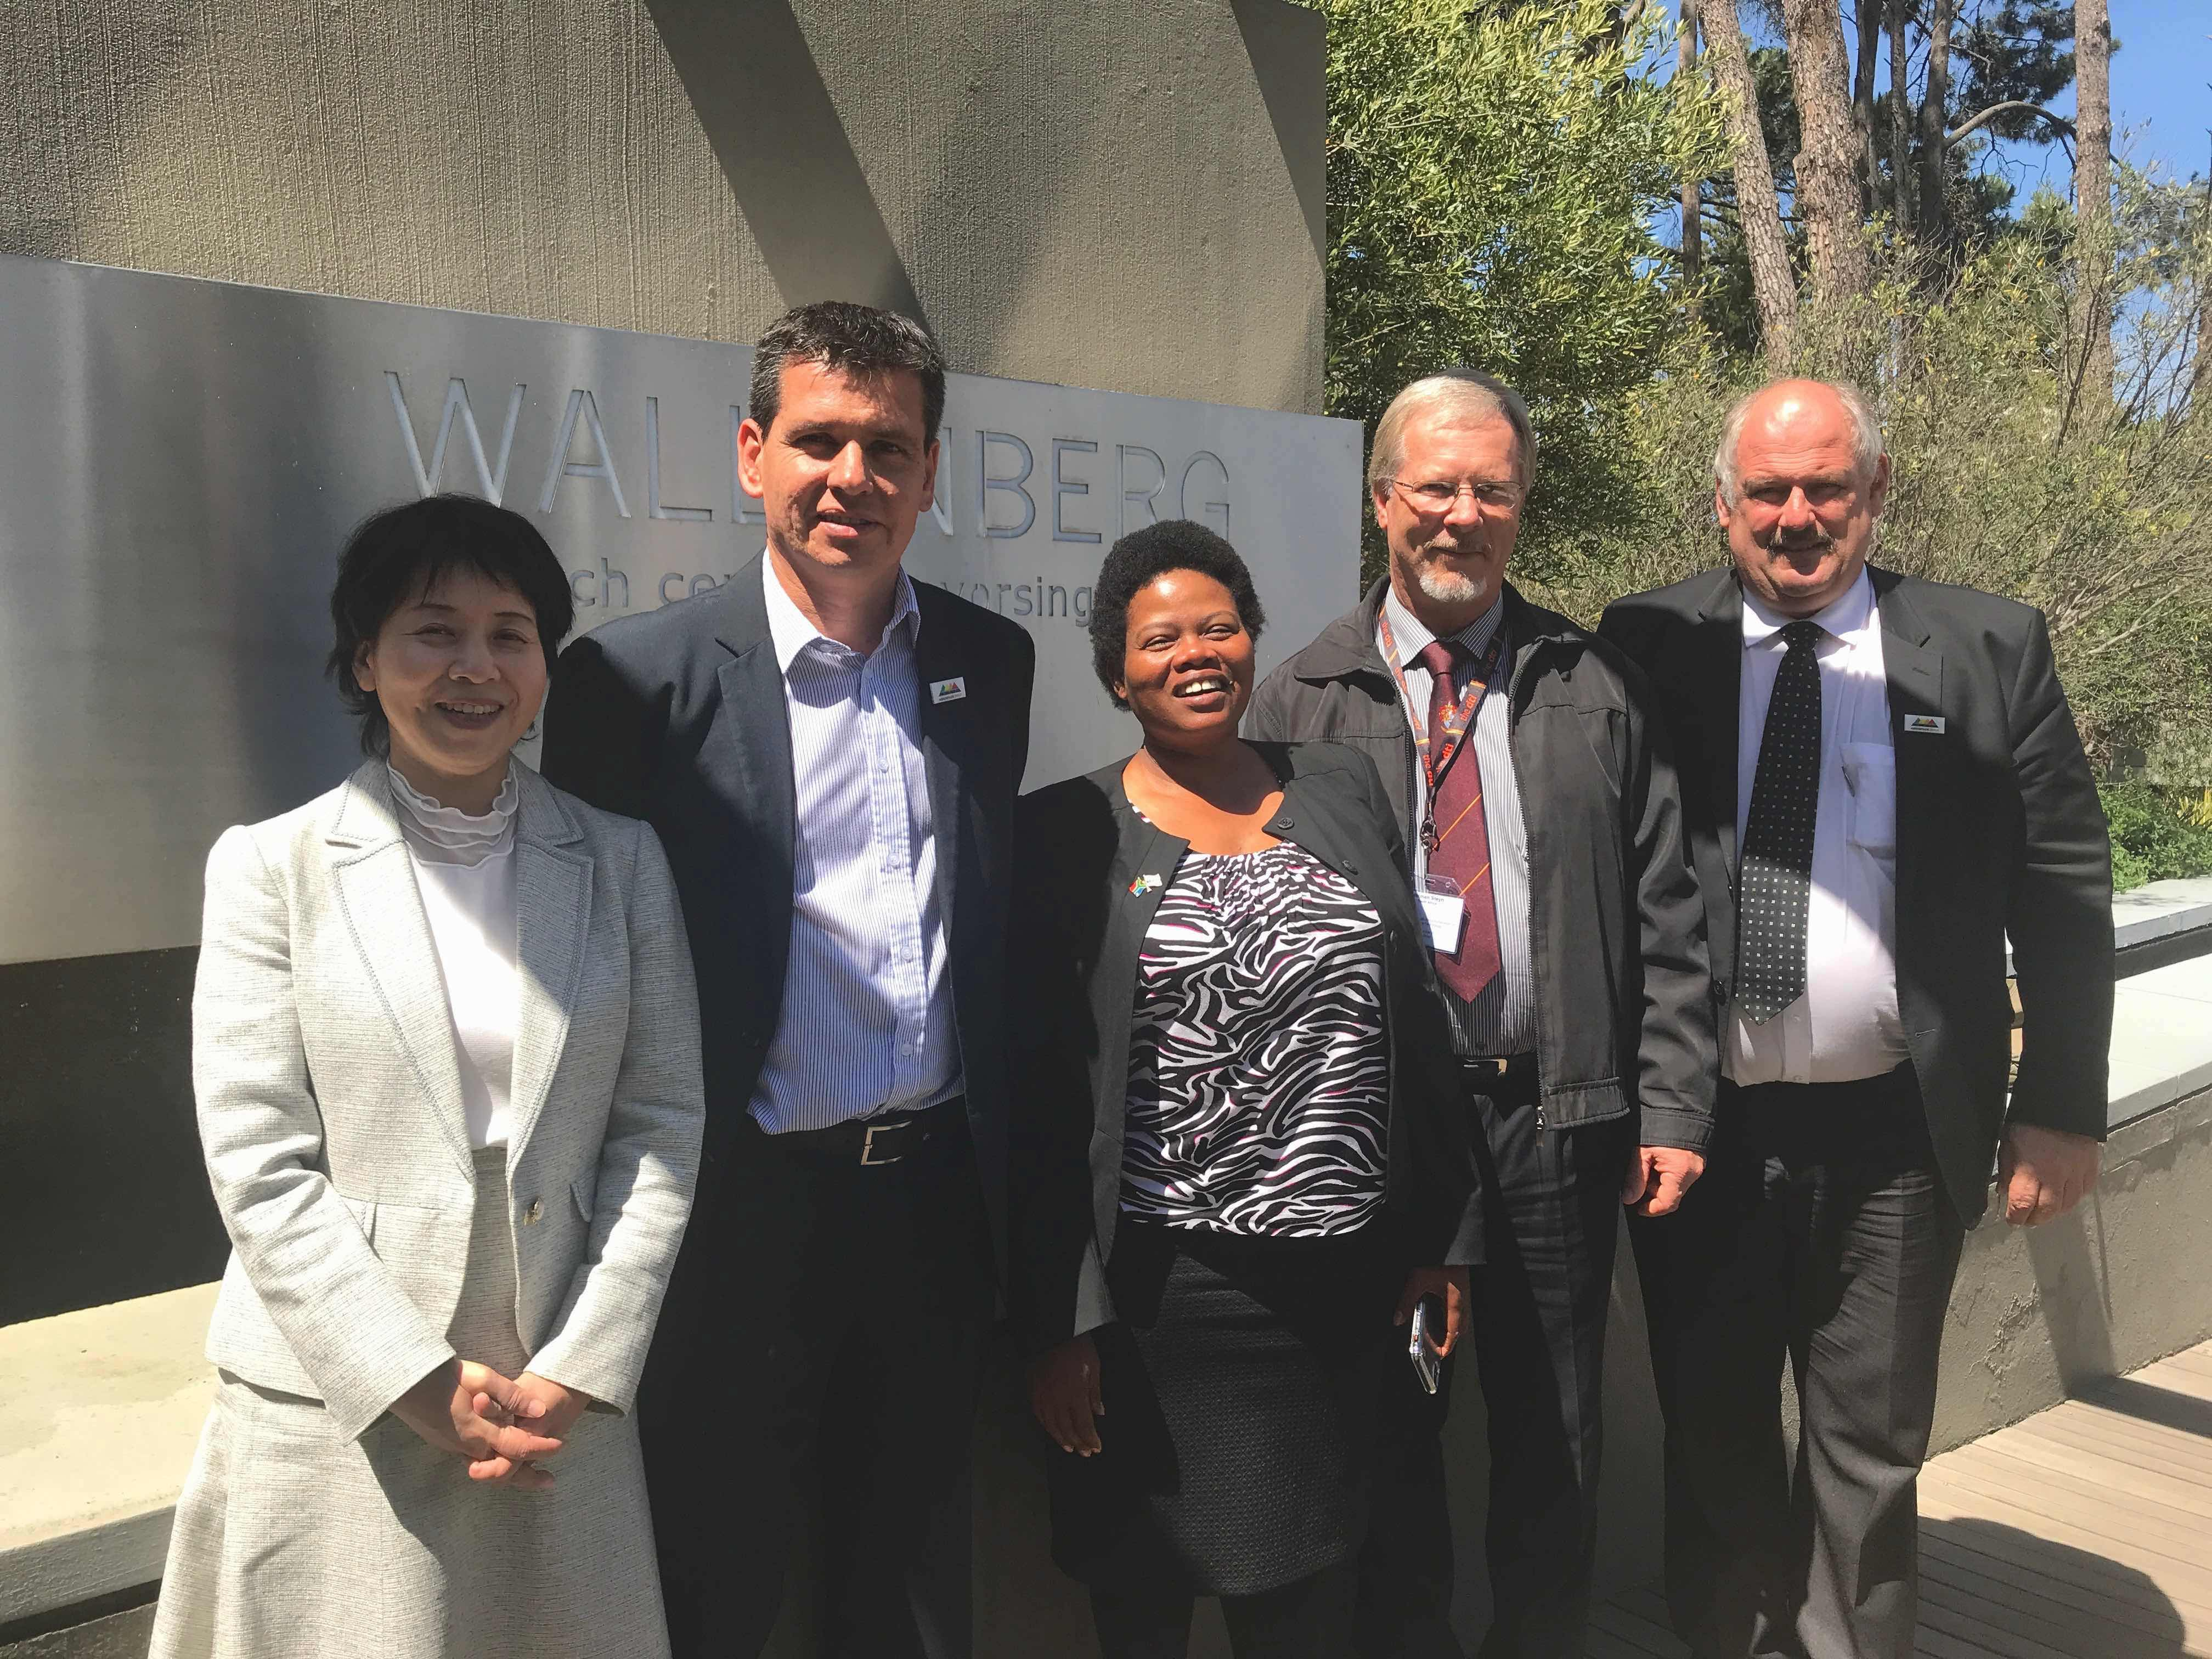 Rei Kawashima (UNISEC-Global), Francois Denner (SCS Aerospace Group), Pontsho Maruping (South African Council of Space Affairs), Herman Steyn (Stellenbosch University), Sias Mostert (SCS Aerospace Group).